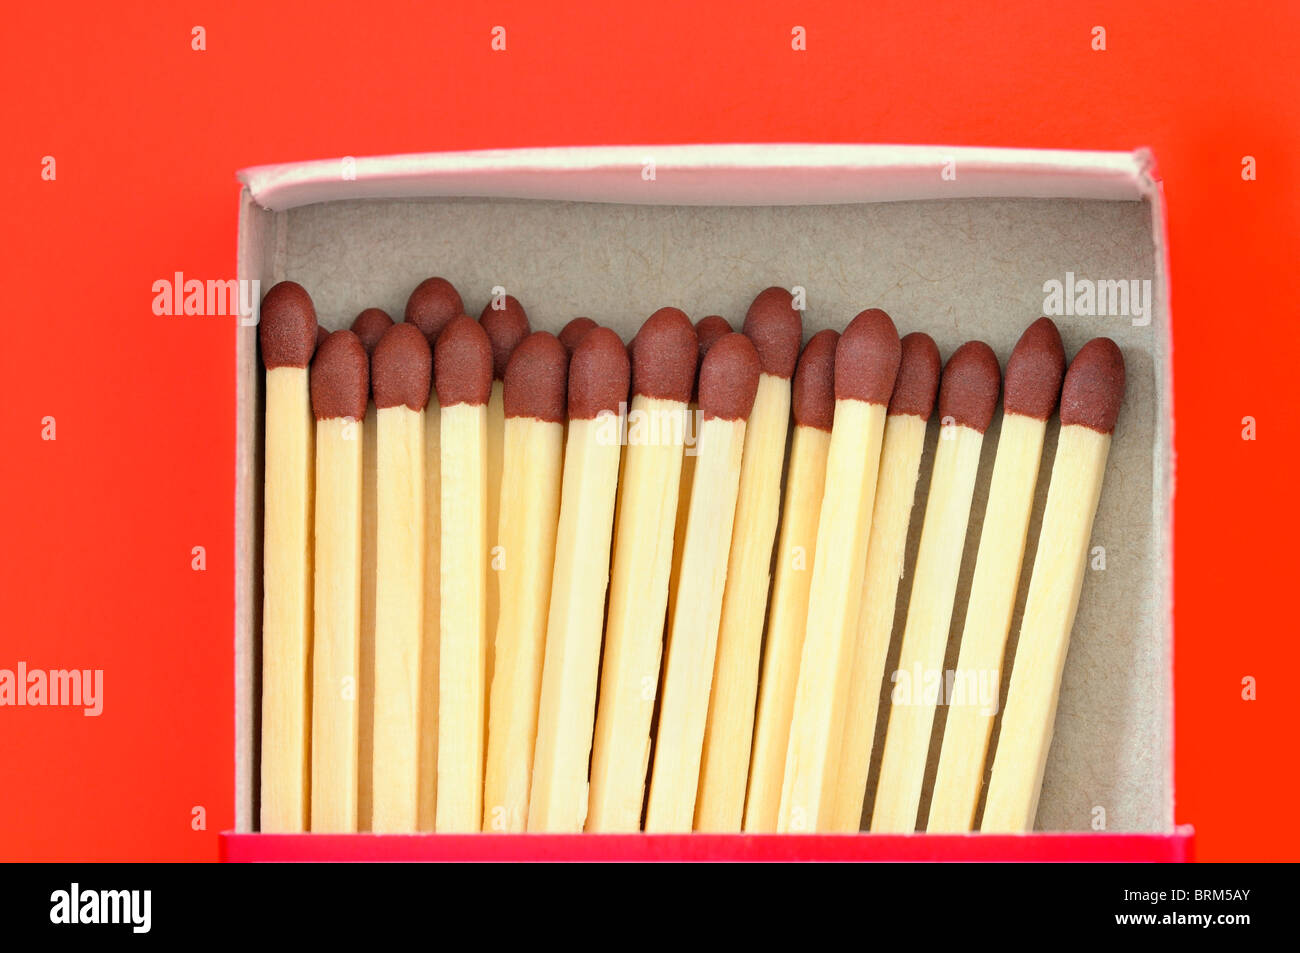 Box of Matches - Stock Image